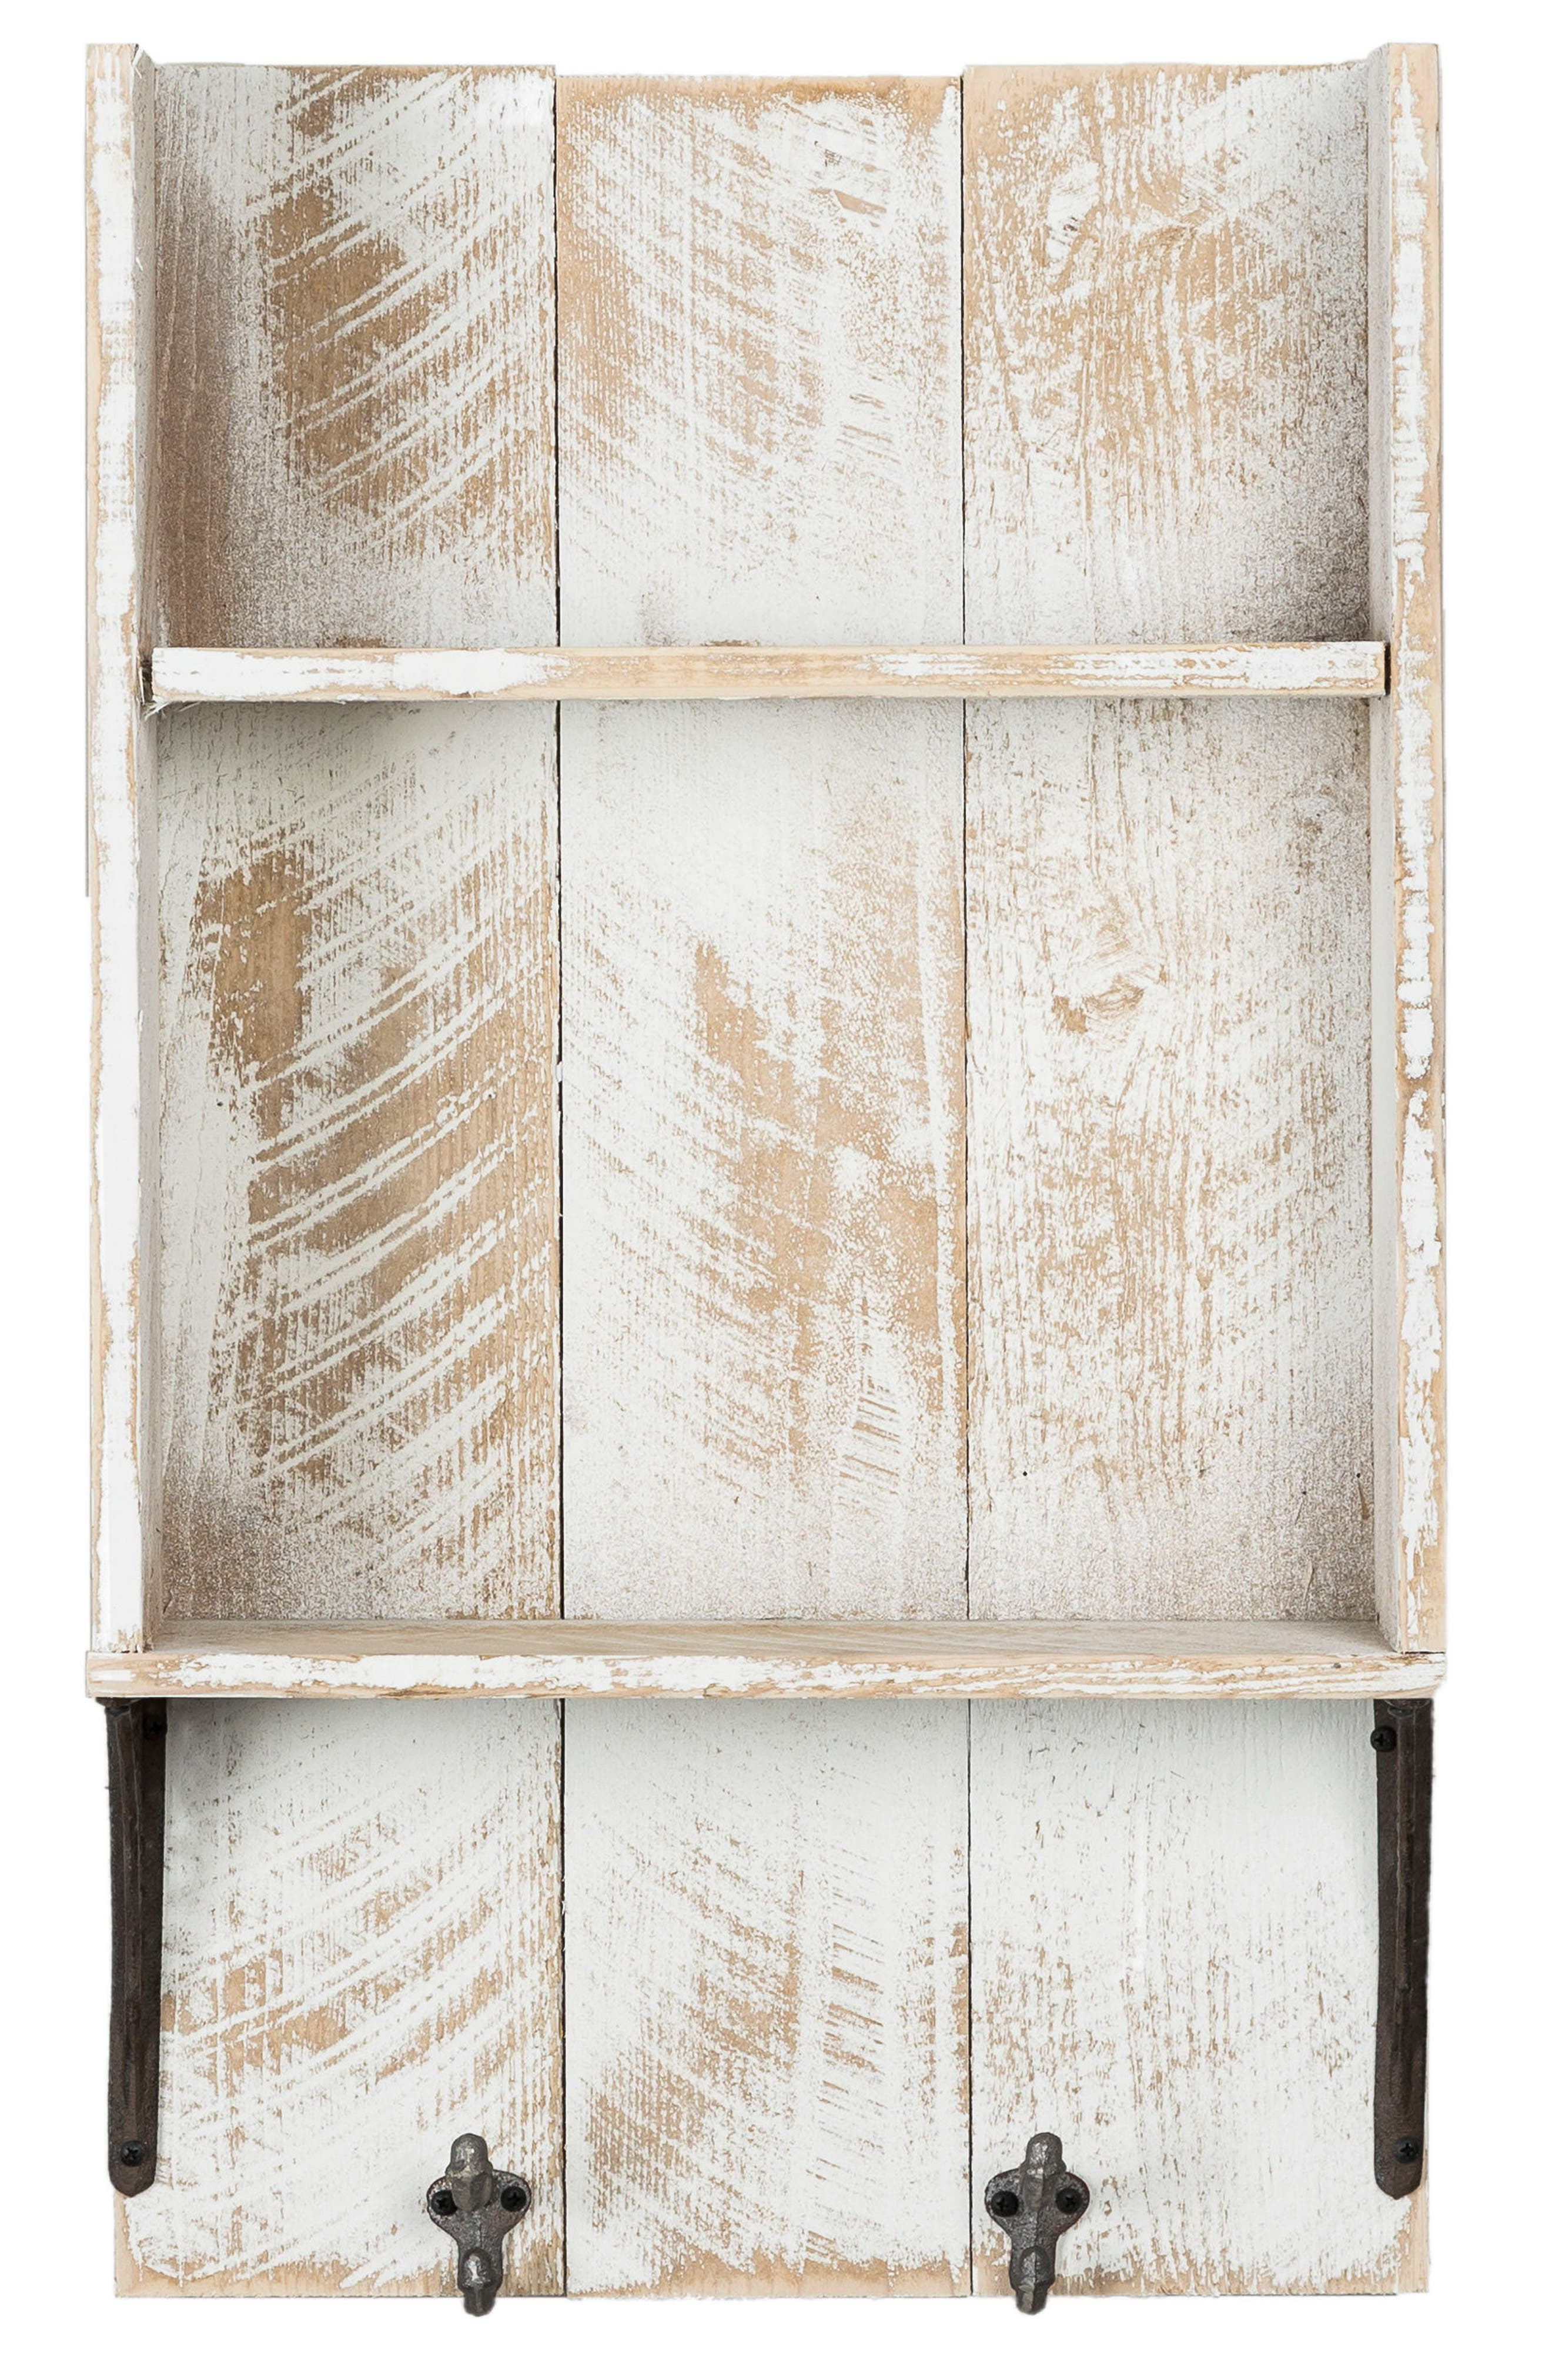 Alternate Image 1 Selected - (del)Hutson Designs Reclaimed Wood Shelf with Hooks